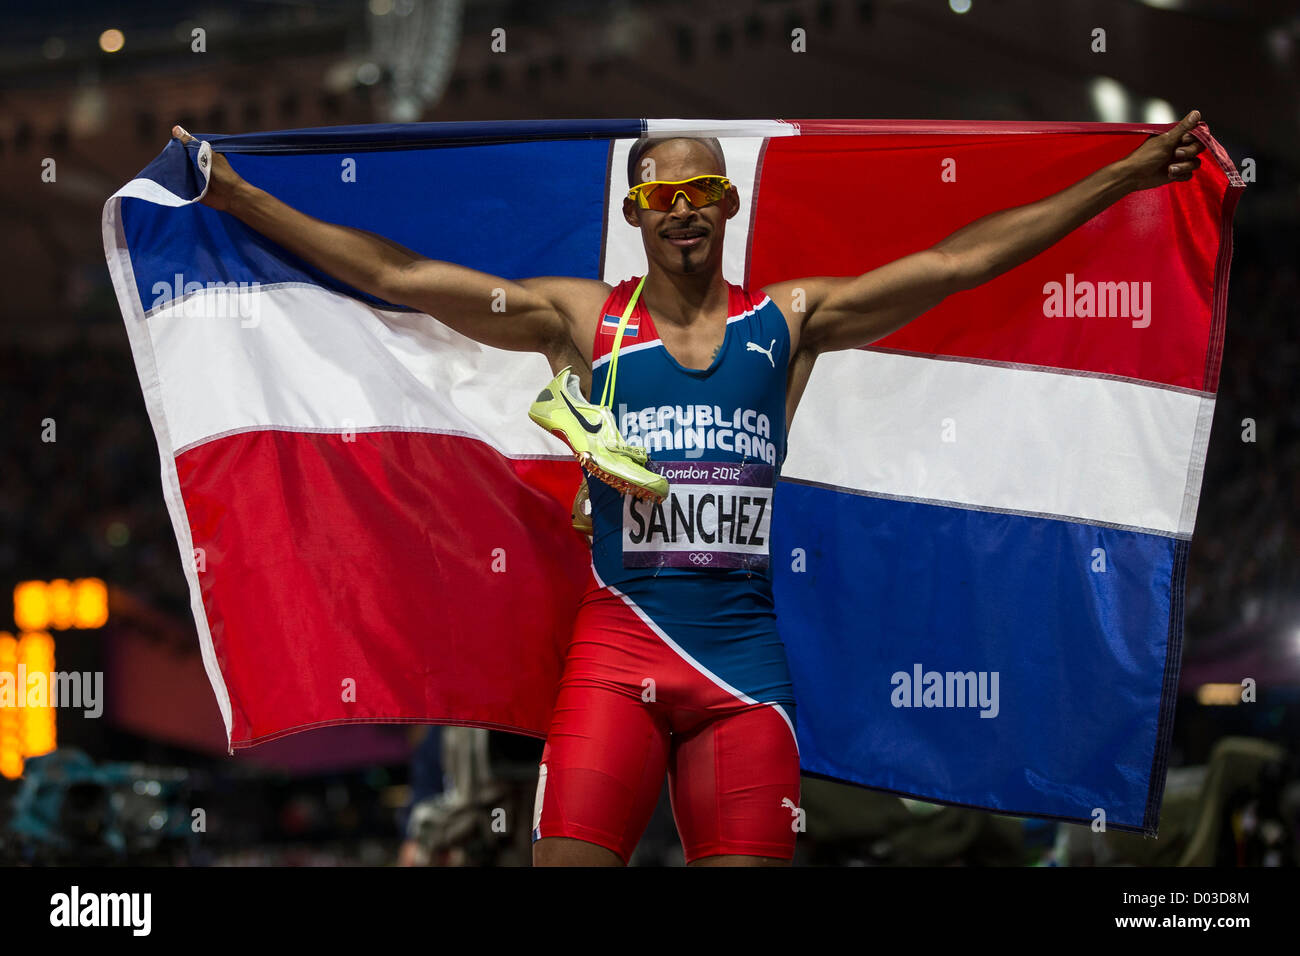 Felix Sanchez (DOM) gold medal winner in the Men's 400m Hurdles at the Olympic Summer Games, London 2012 - Stock Image